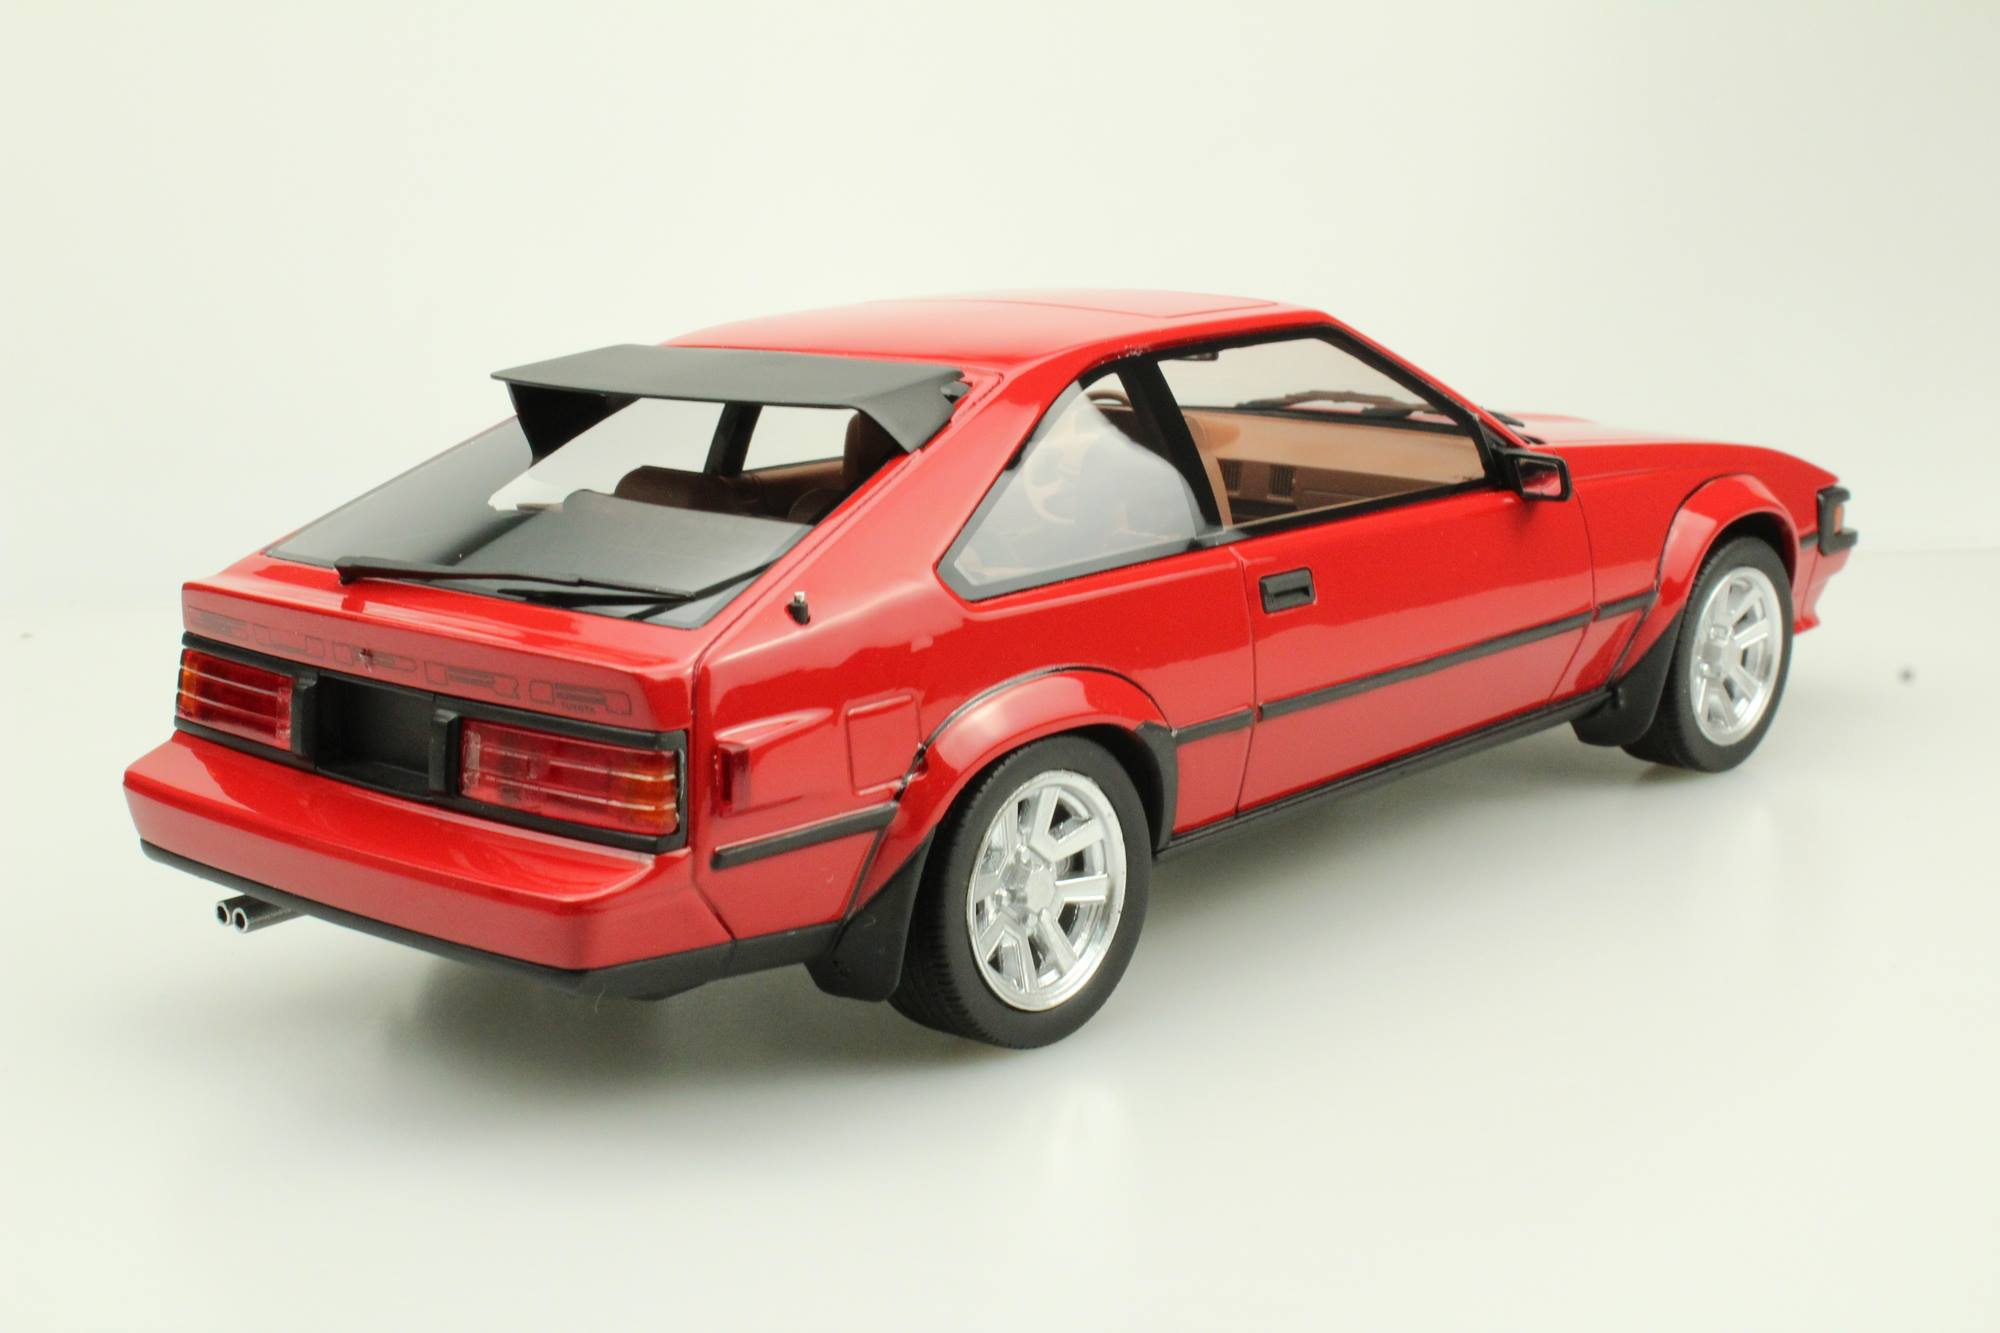 MINICARS: LS Collectibles' 1:18 Toyota Celica Supra is now